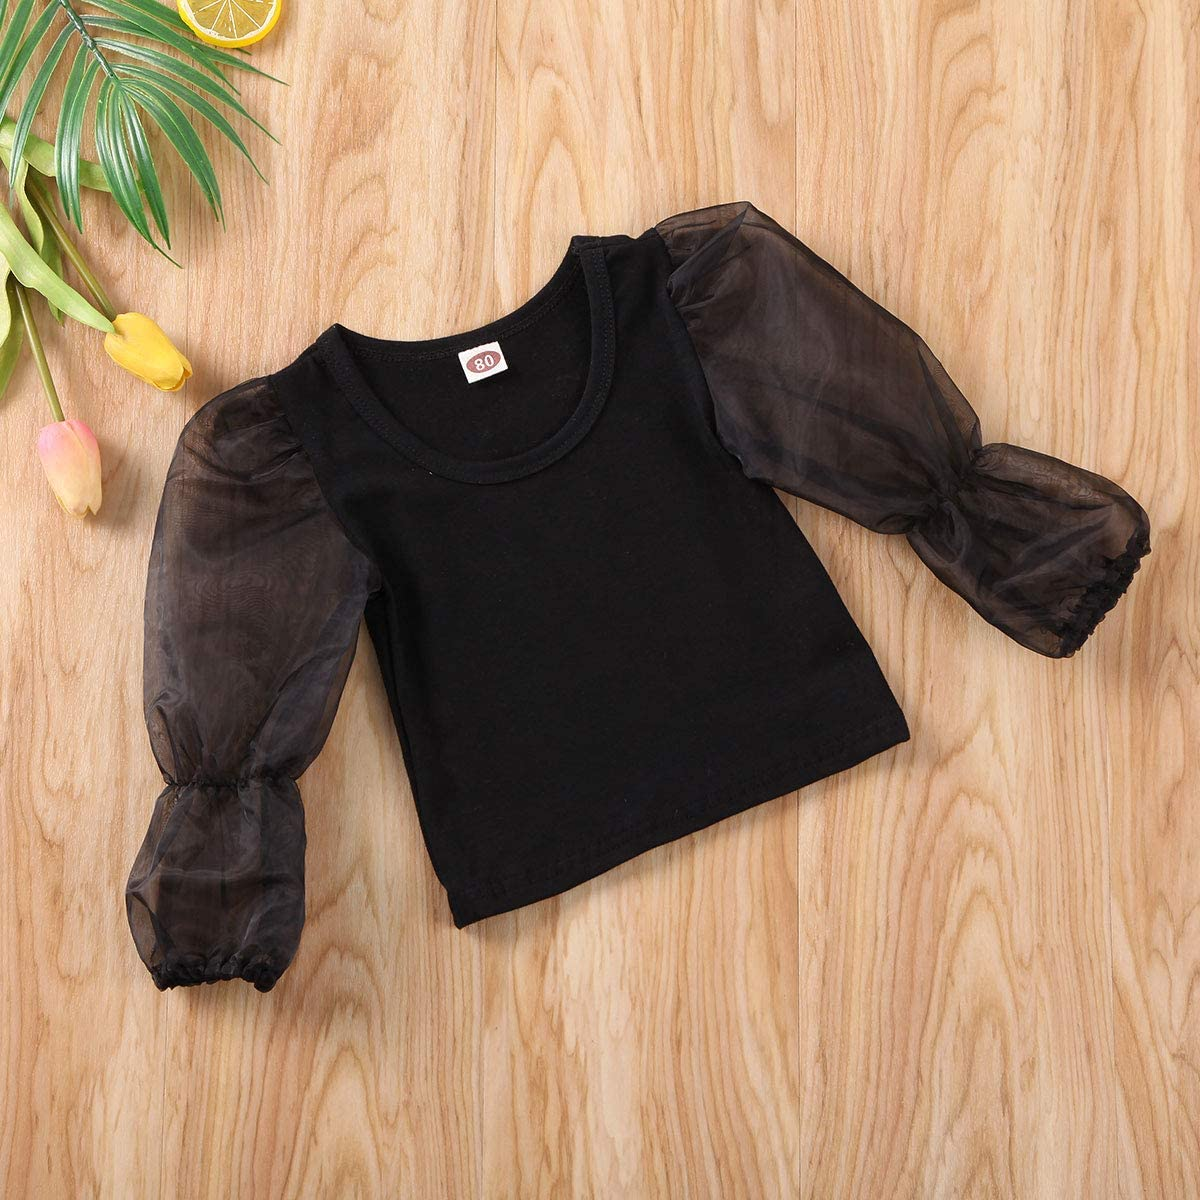 Toddler Baby Girls Mesh Puff Sleeve Crop Top Solid Color Ruffle Flare Blouse T-Shirt Pullover Summer Outfits Clothes